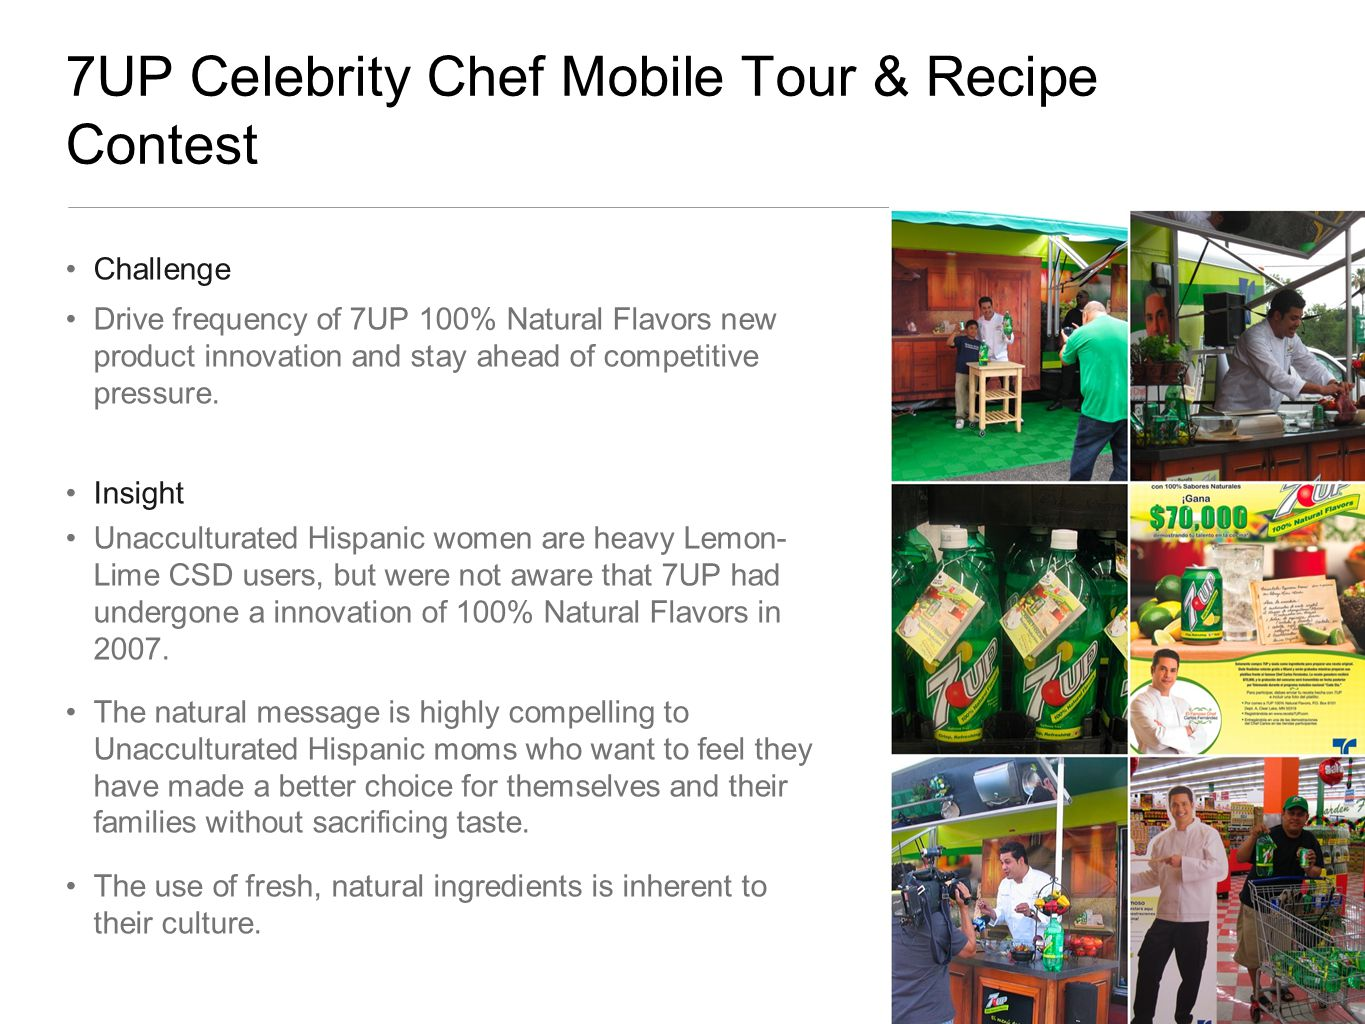 7UP Celebrity Chef Mobile Tour & Recipe Contest Challenge Drive frequency of 7UP 100% Natural Flavors new product innovation and stay ahead of competitive pressure.